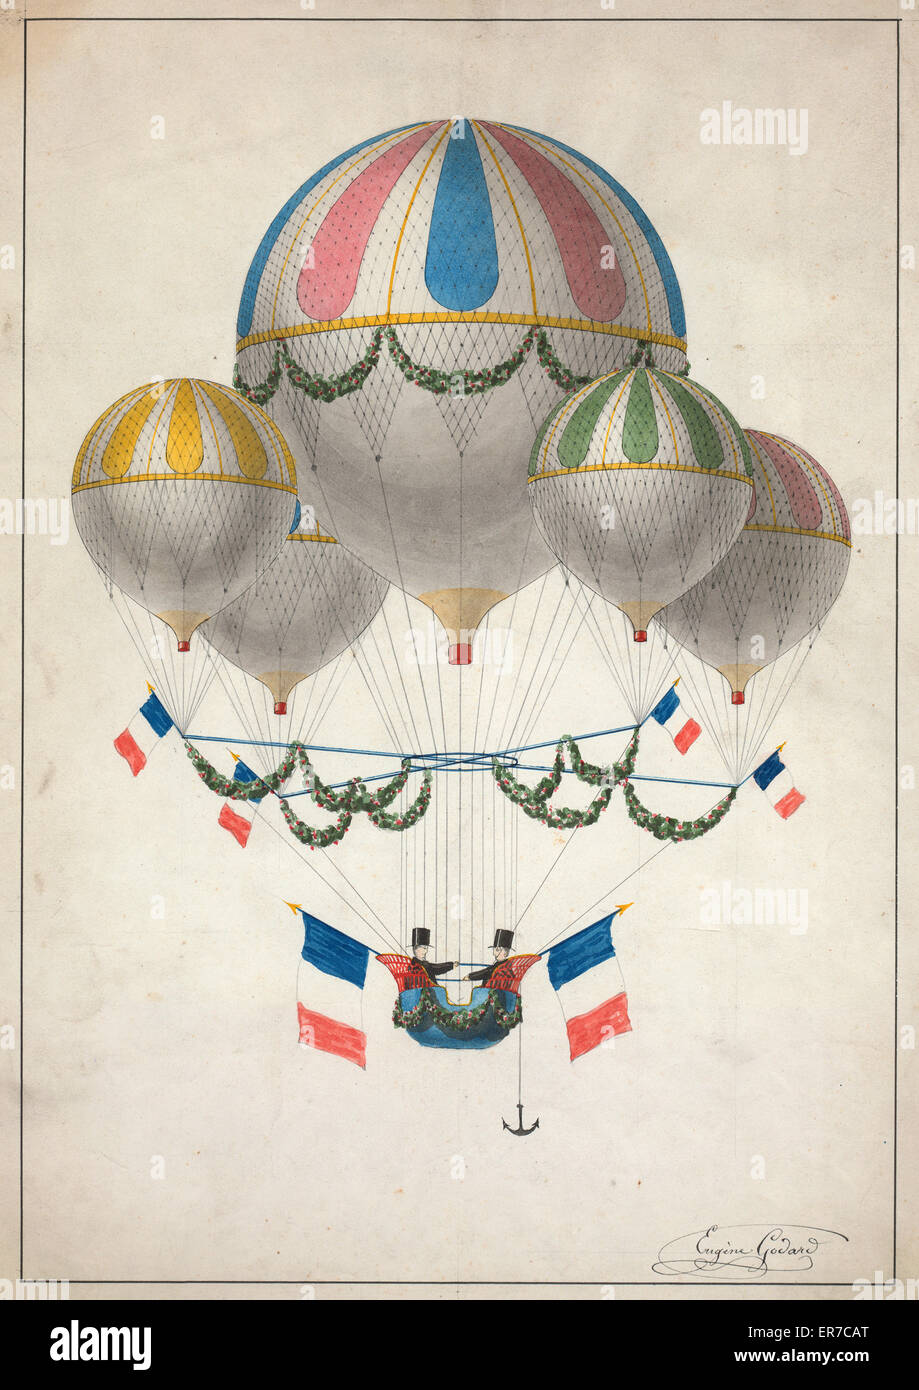 A lighter-than-air craft, consisting of one large balloon and four smaller balloons harnessed together, decorated - Stock Image